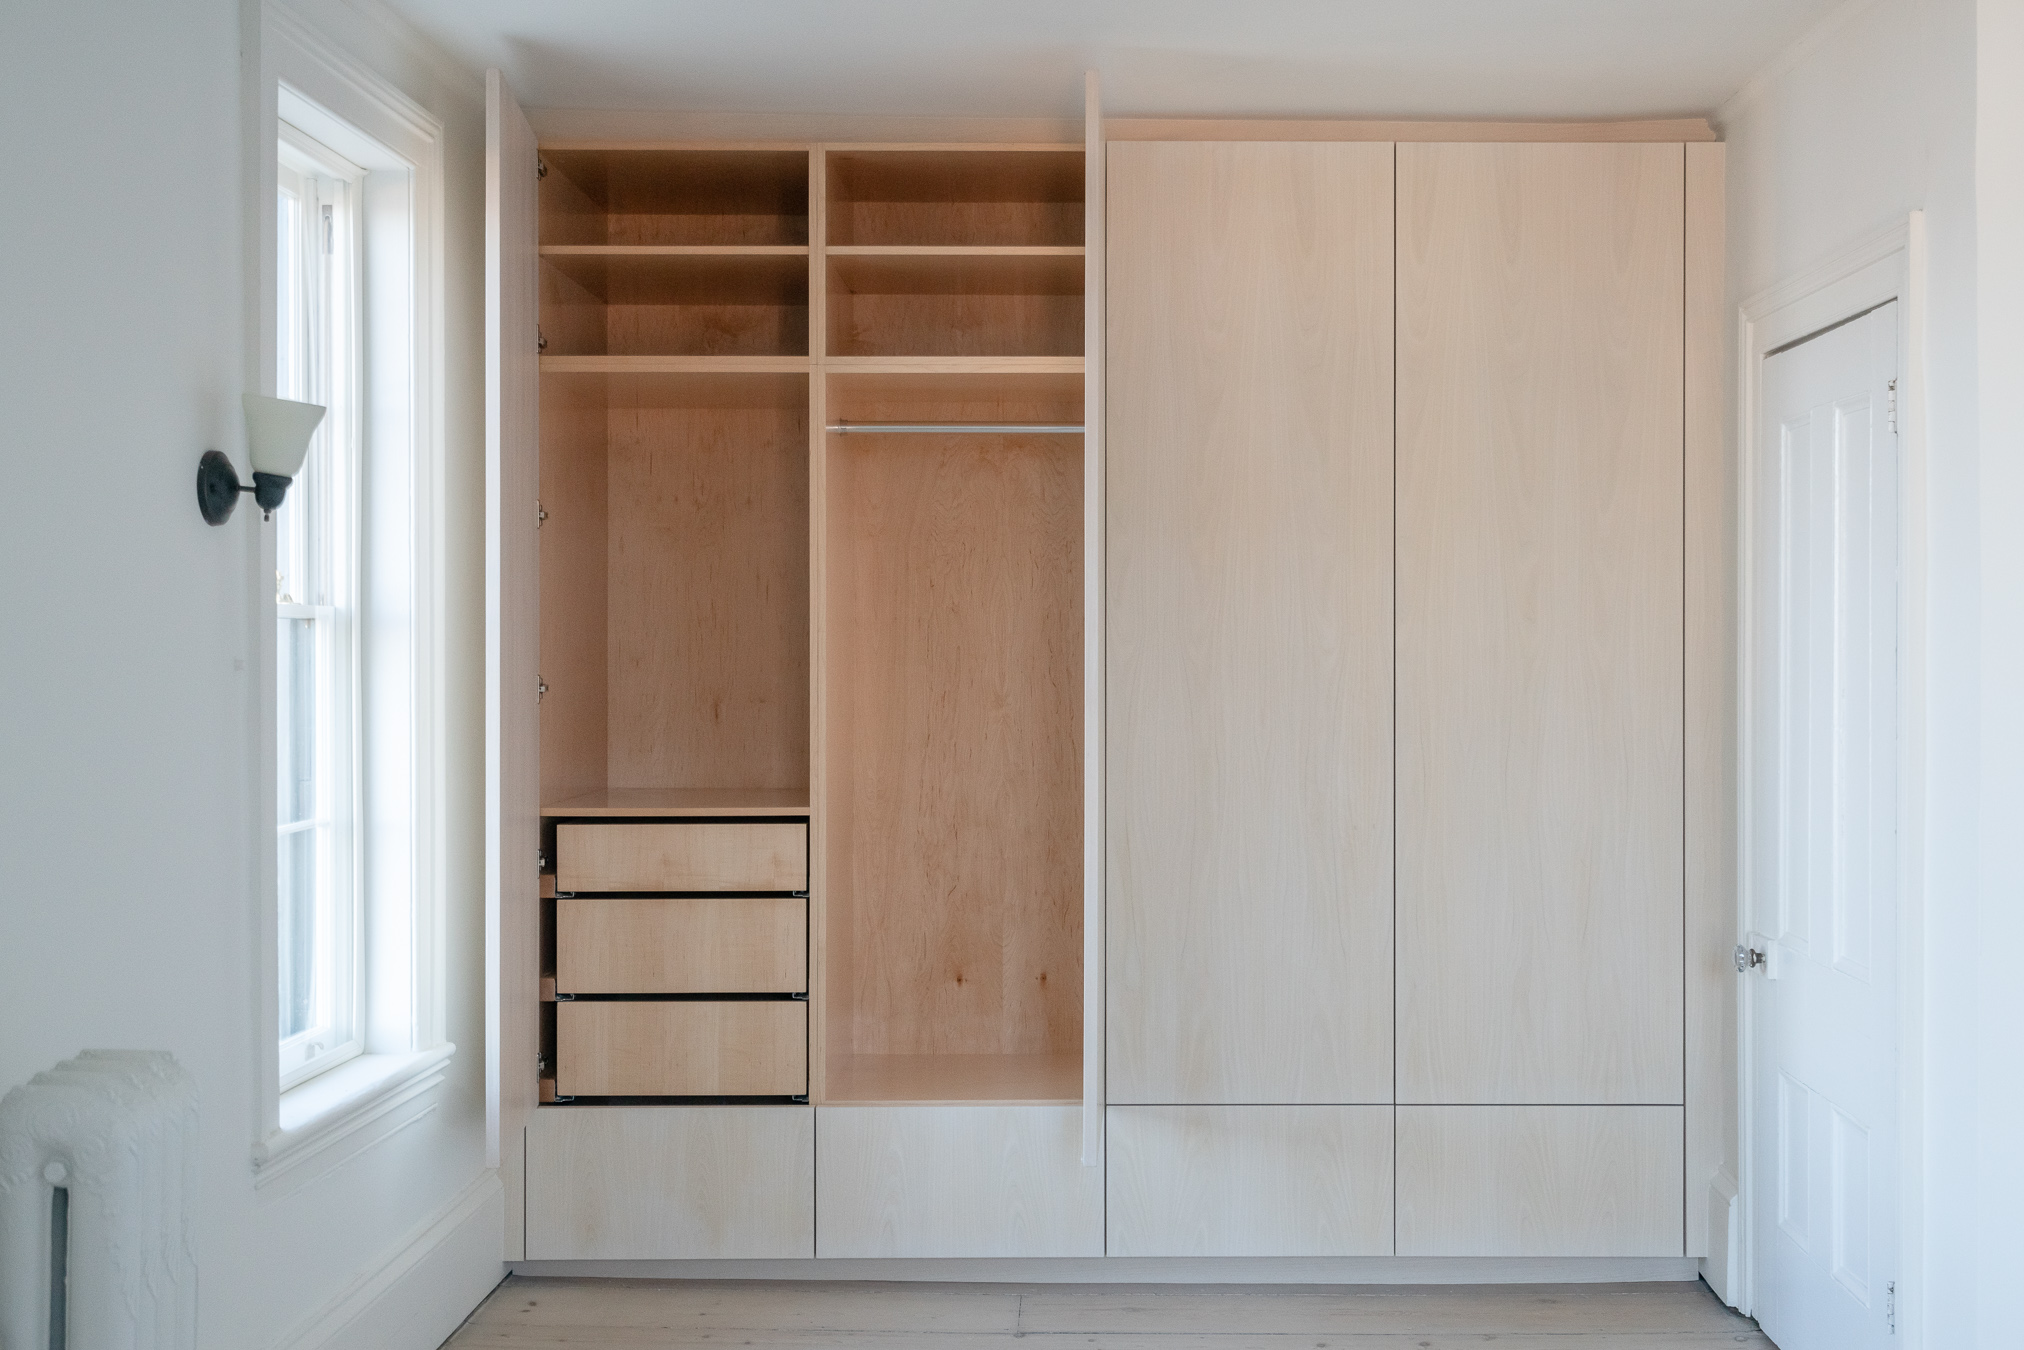 Pullout drawers and closet rods with adjustable shelves